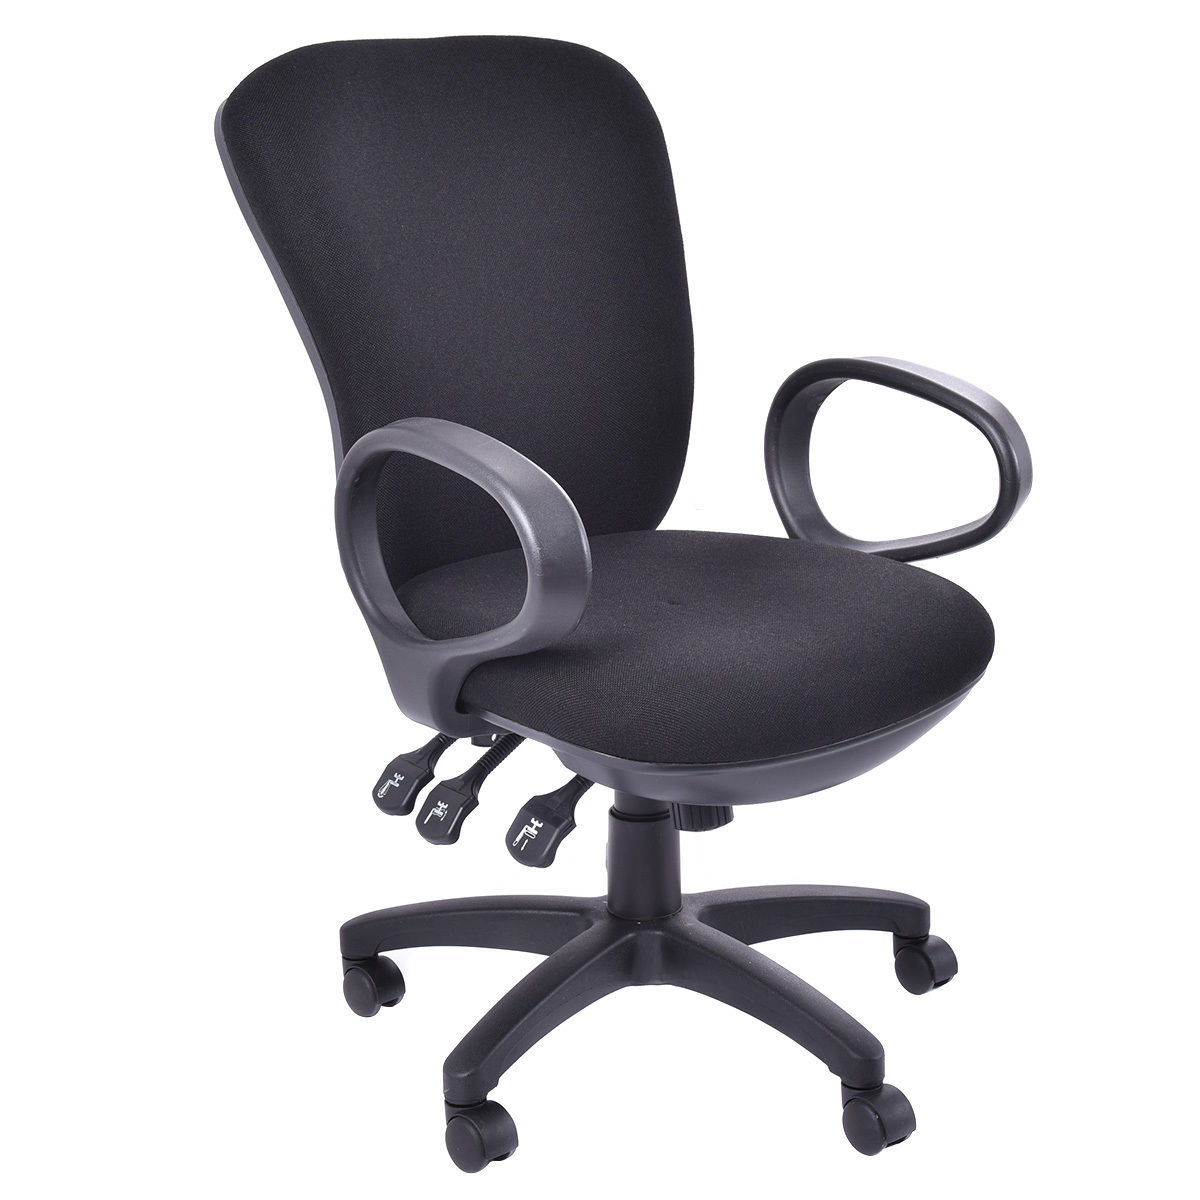 Giantex Mordern Ergonomic Mid-Back Gamign Chair Executive Computer Desk Task Office Chair Black Swivel furniture HW52597 ножницы раскройные aurora au 901 105